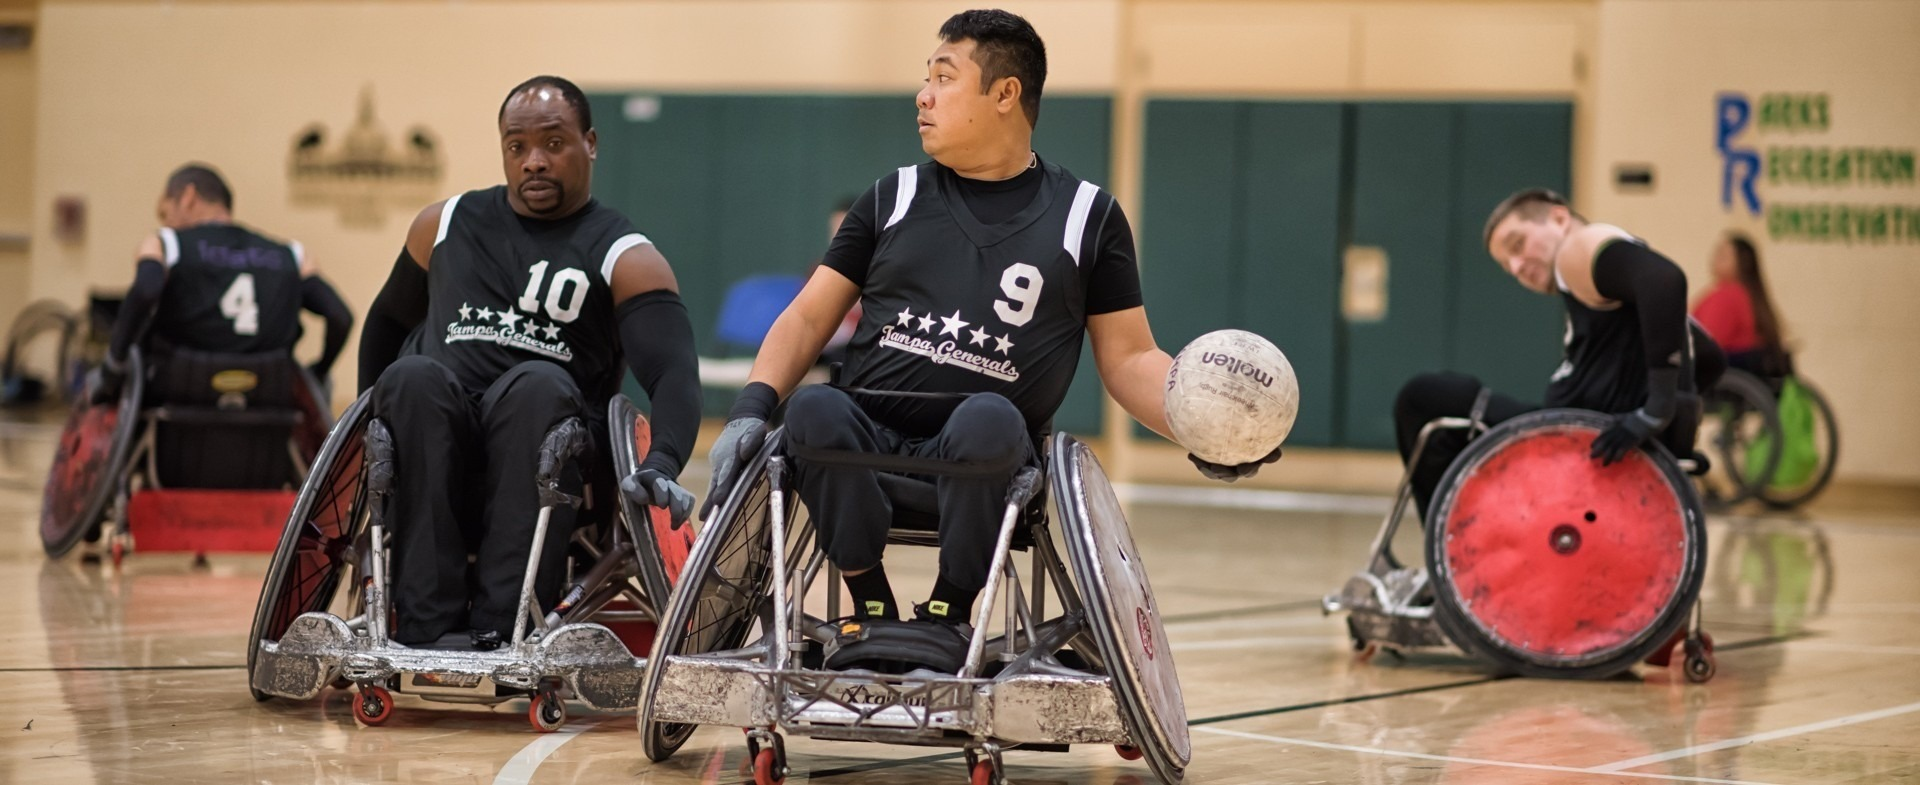 Men playing wheelchair rugby